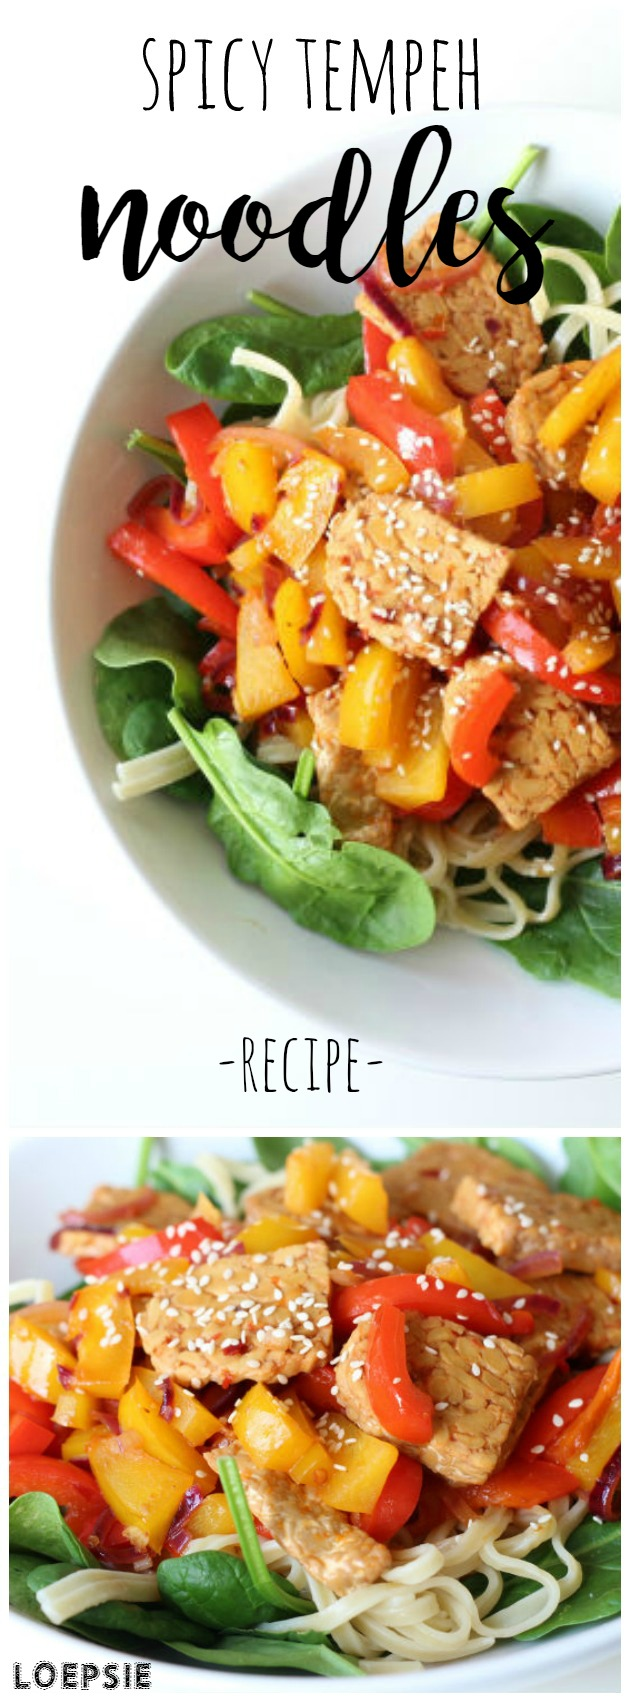 Spicy tempeh noodle recipe (vegan)